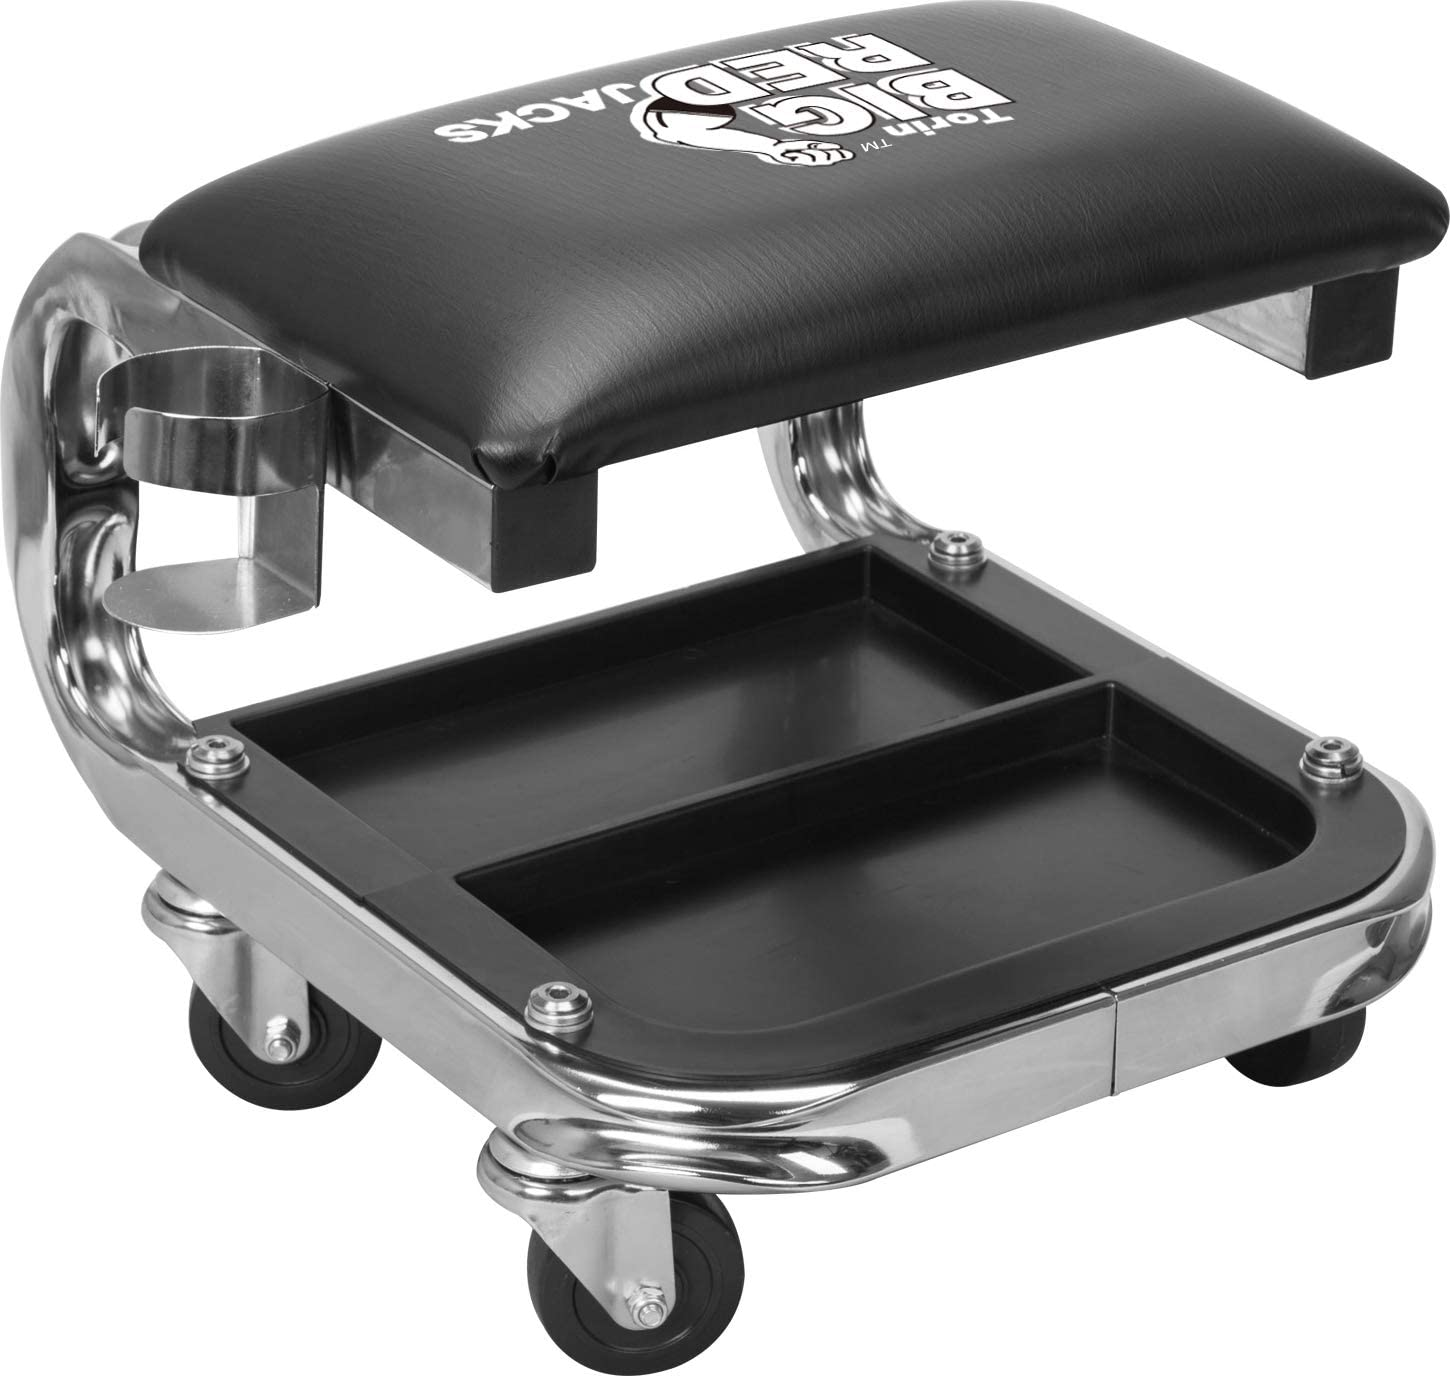 Black Big Red AR7451B Torin Heavy Duty Rolling Creeper Garage//Shop Seat Padded Mechanic Stool with Tool Tray Storage and Cup Holder